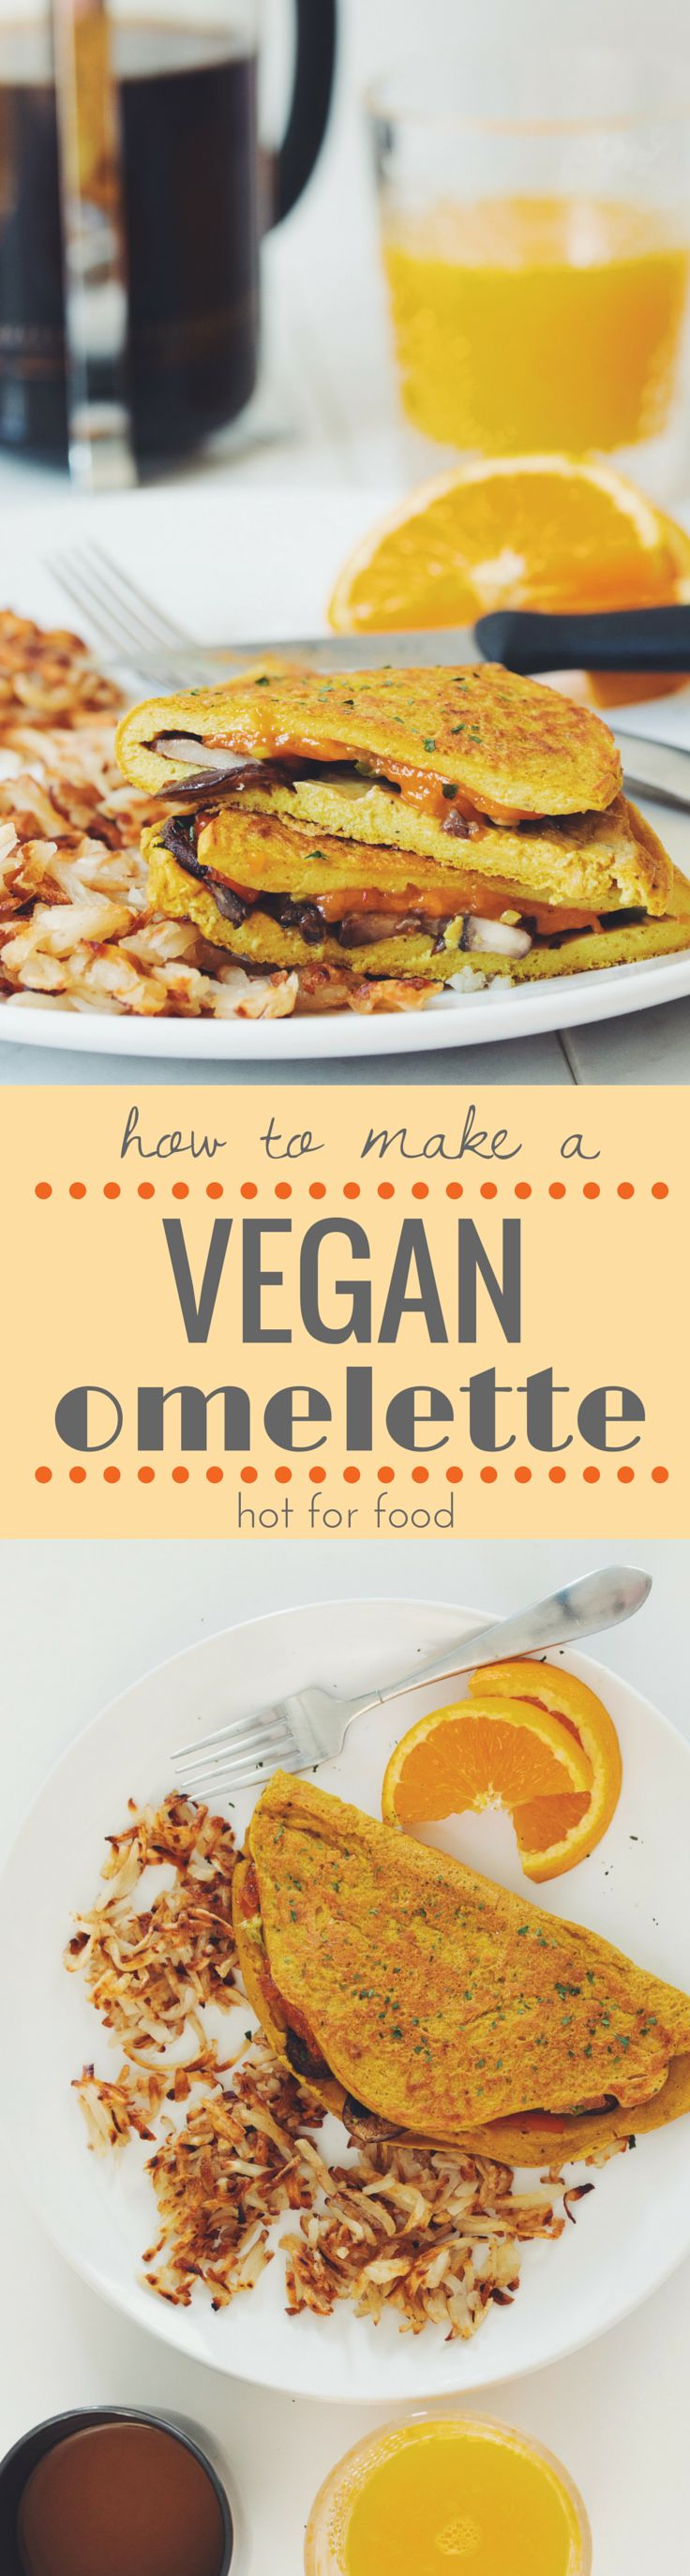 how to make a vegan omelette | RECIPE on hotforfoodblog.com